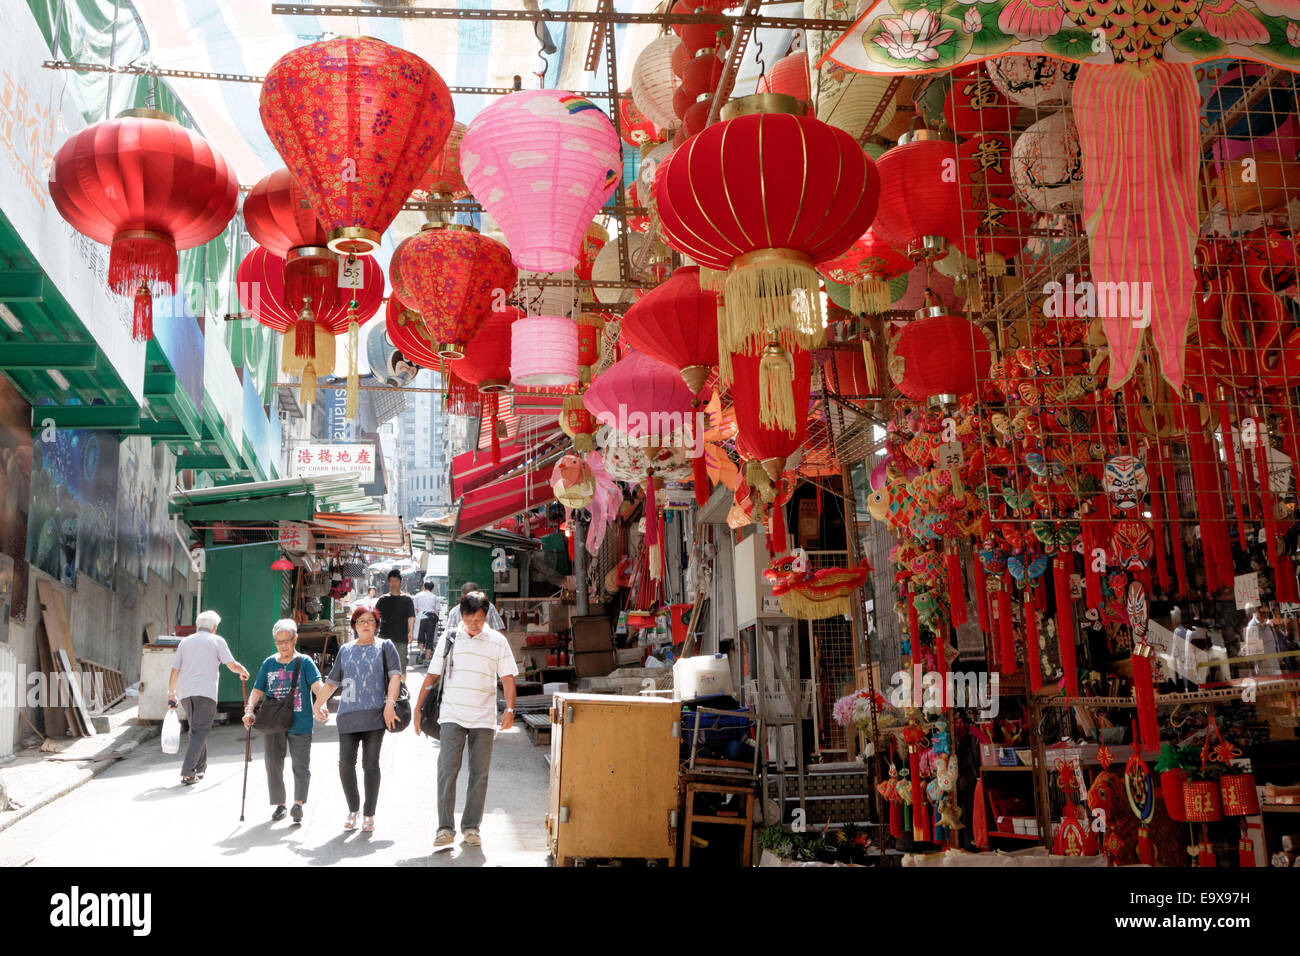 Chinese lamps for sale hang from a stall in the Central district of Hong Kong. - Stock Image